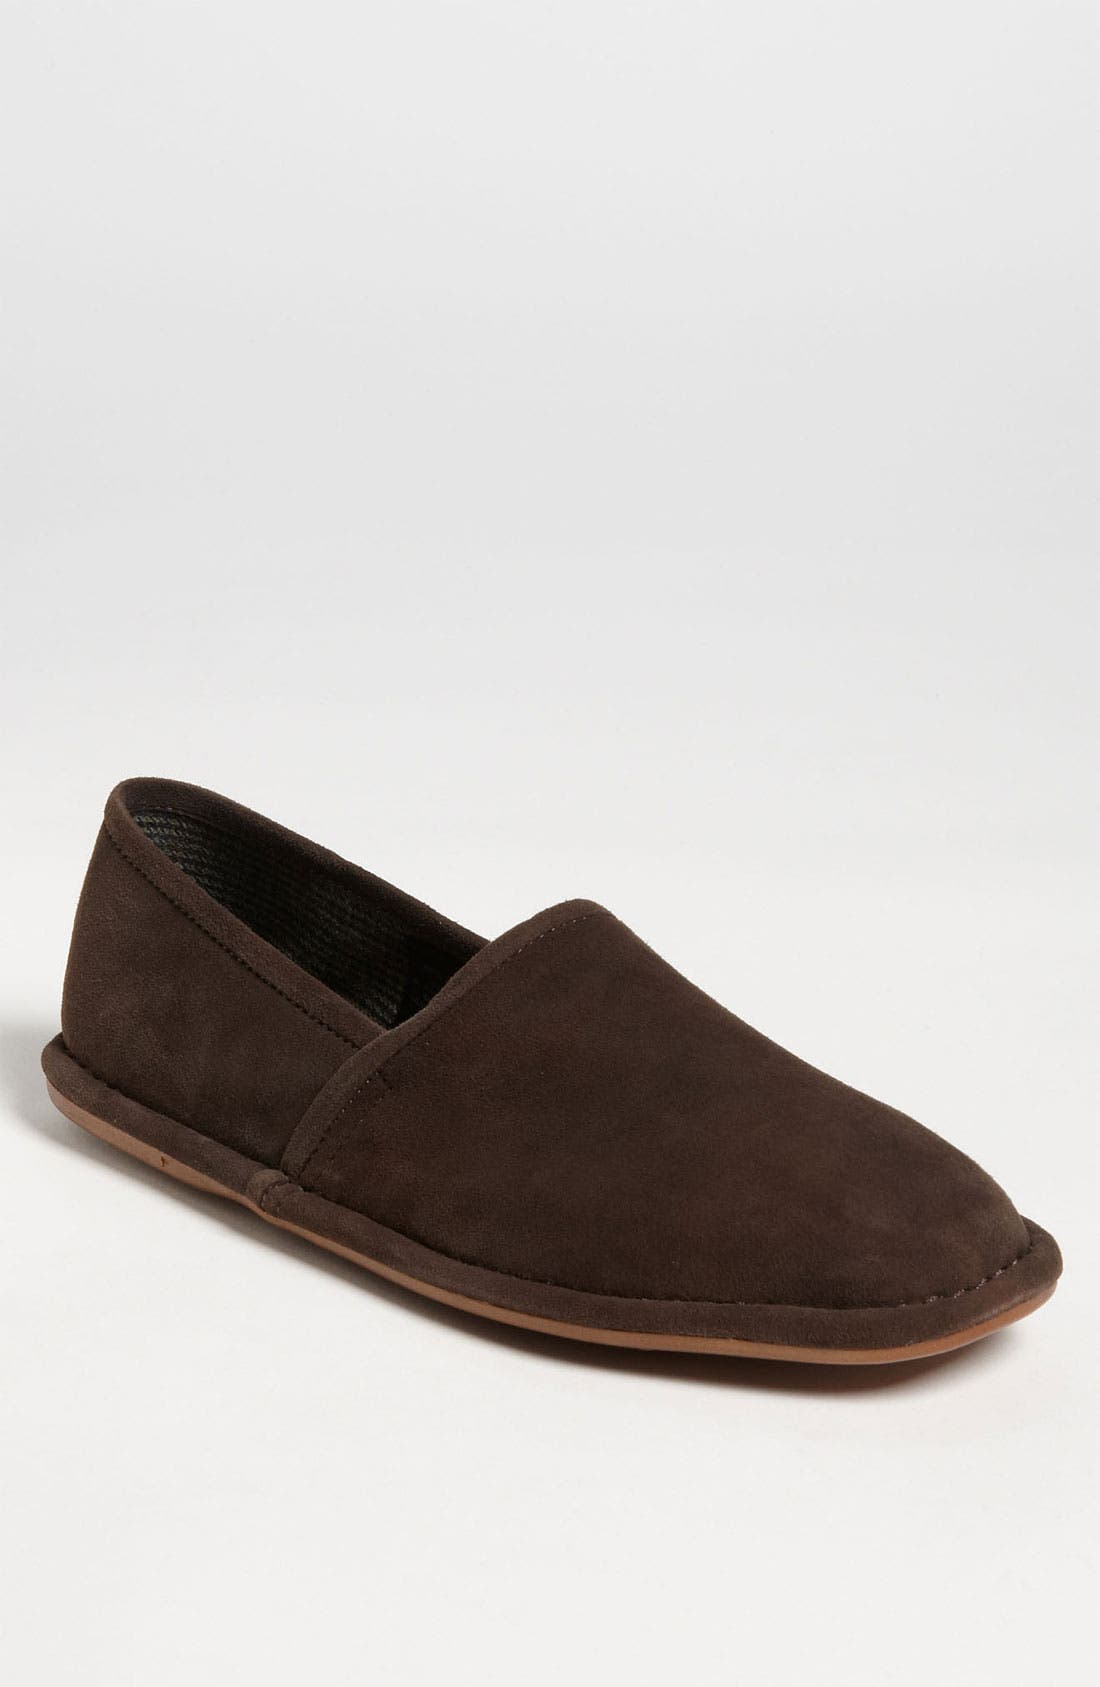 Alternate Image 1 Selected - L.B. Evans 'Lars' Slipper (Online Only)